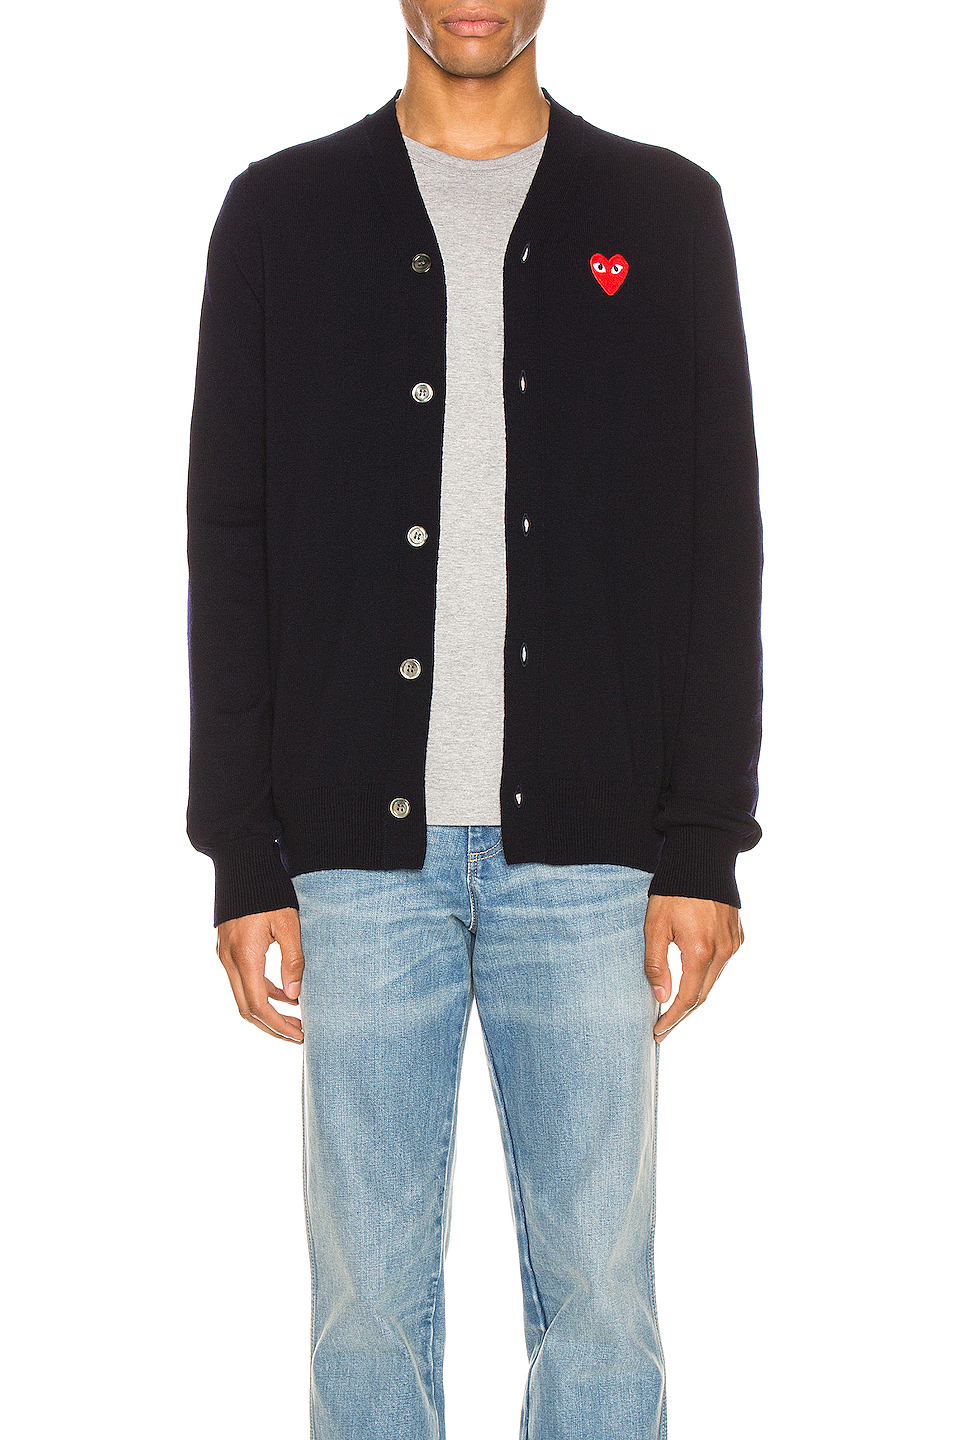 Comme Des Garcons PLAY Lambswool Cardigan with Red Emblem in Blue